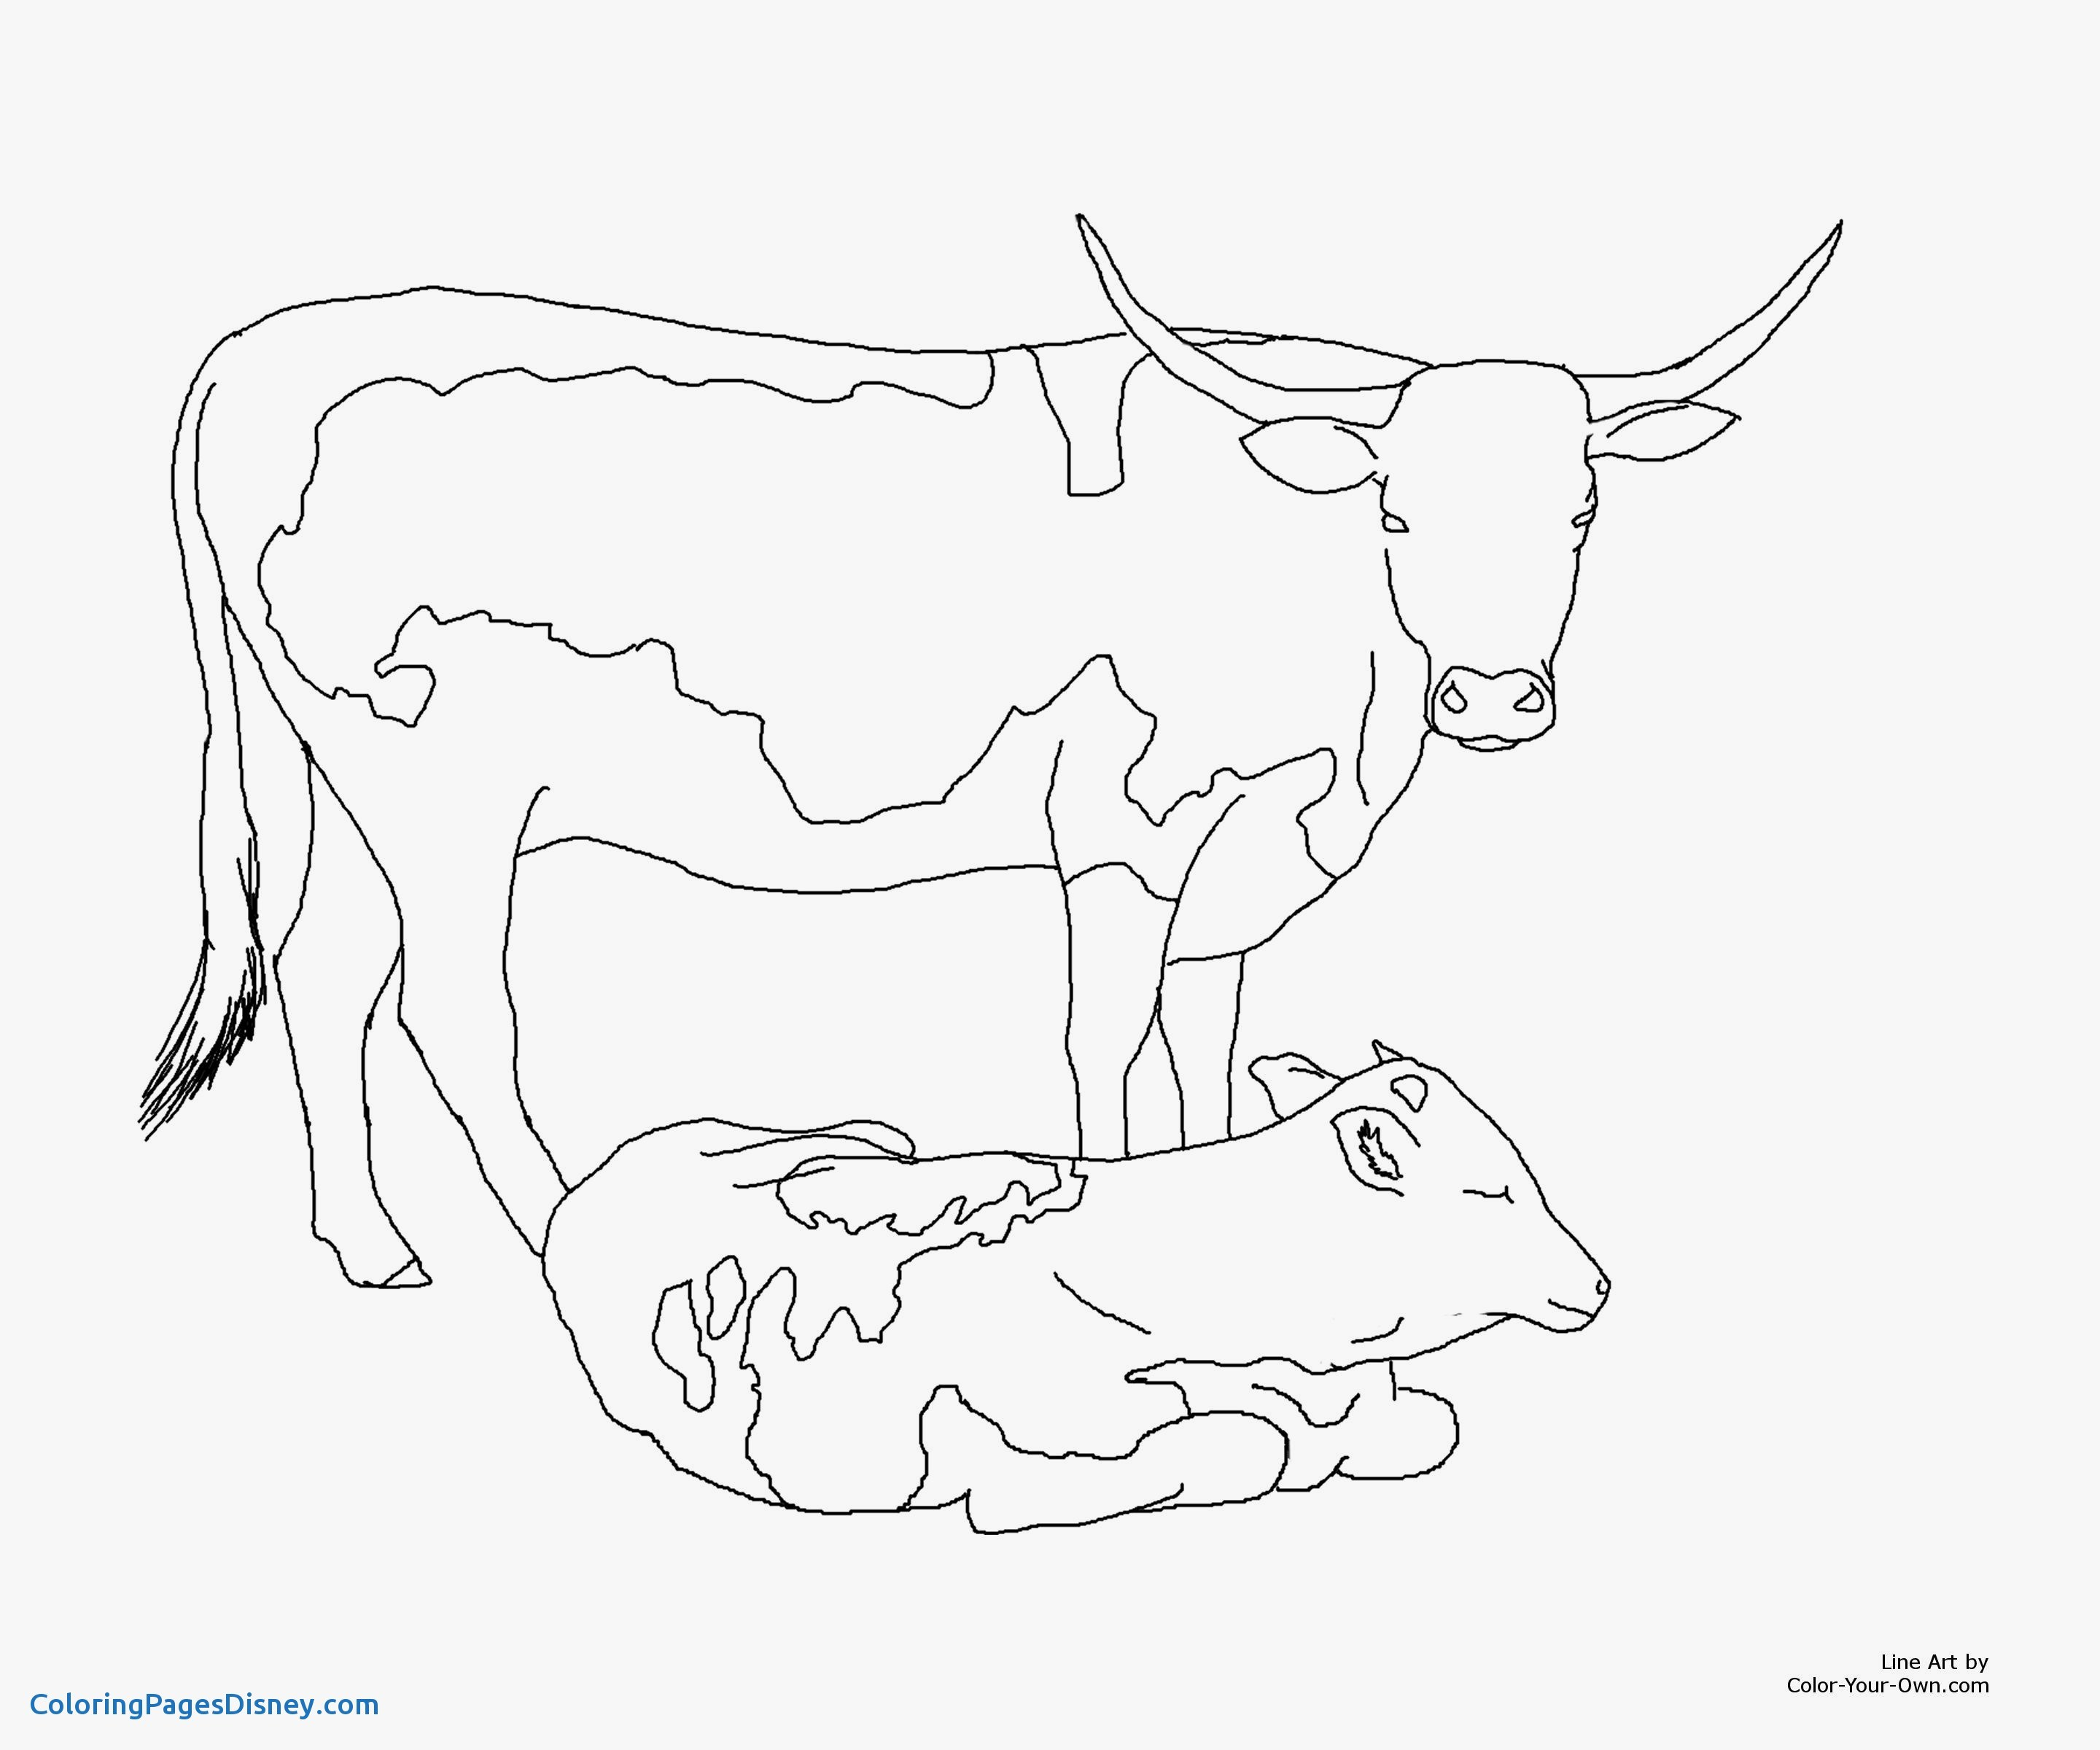 Cow And Calf Coloring Pages At Getdrawings Com Free For Personal